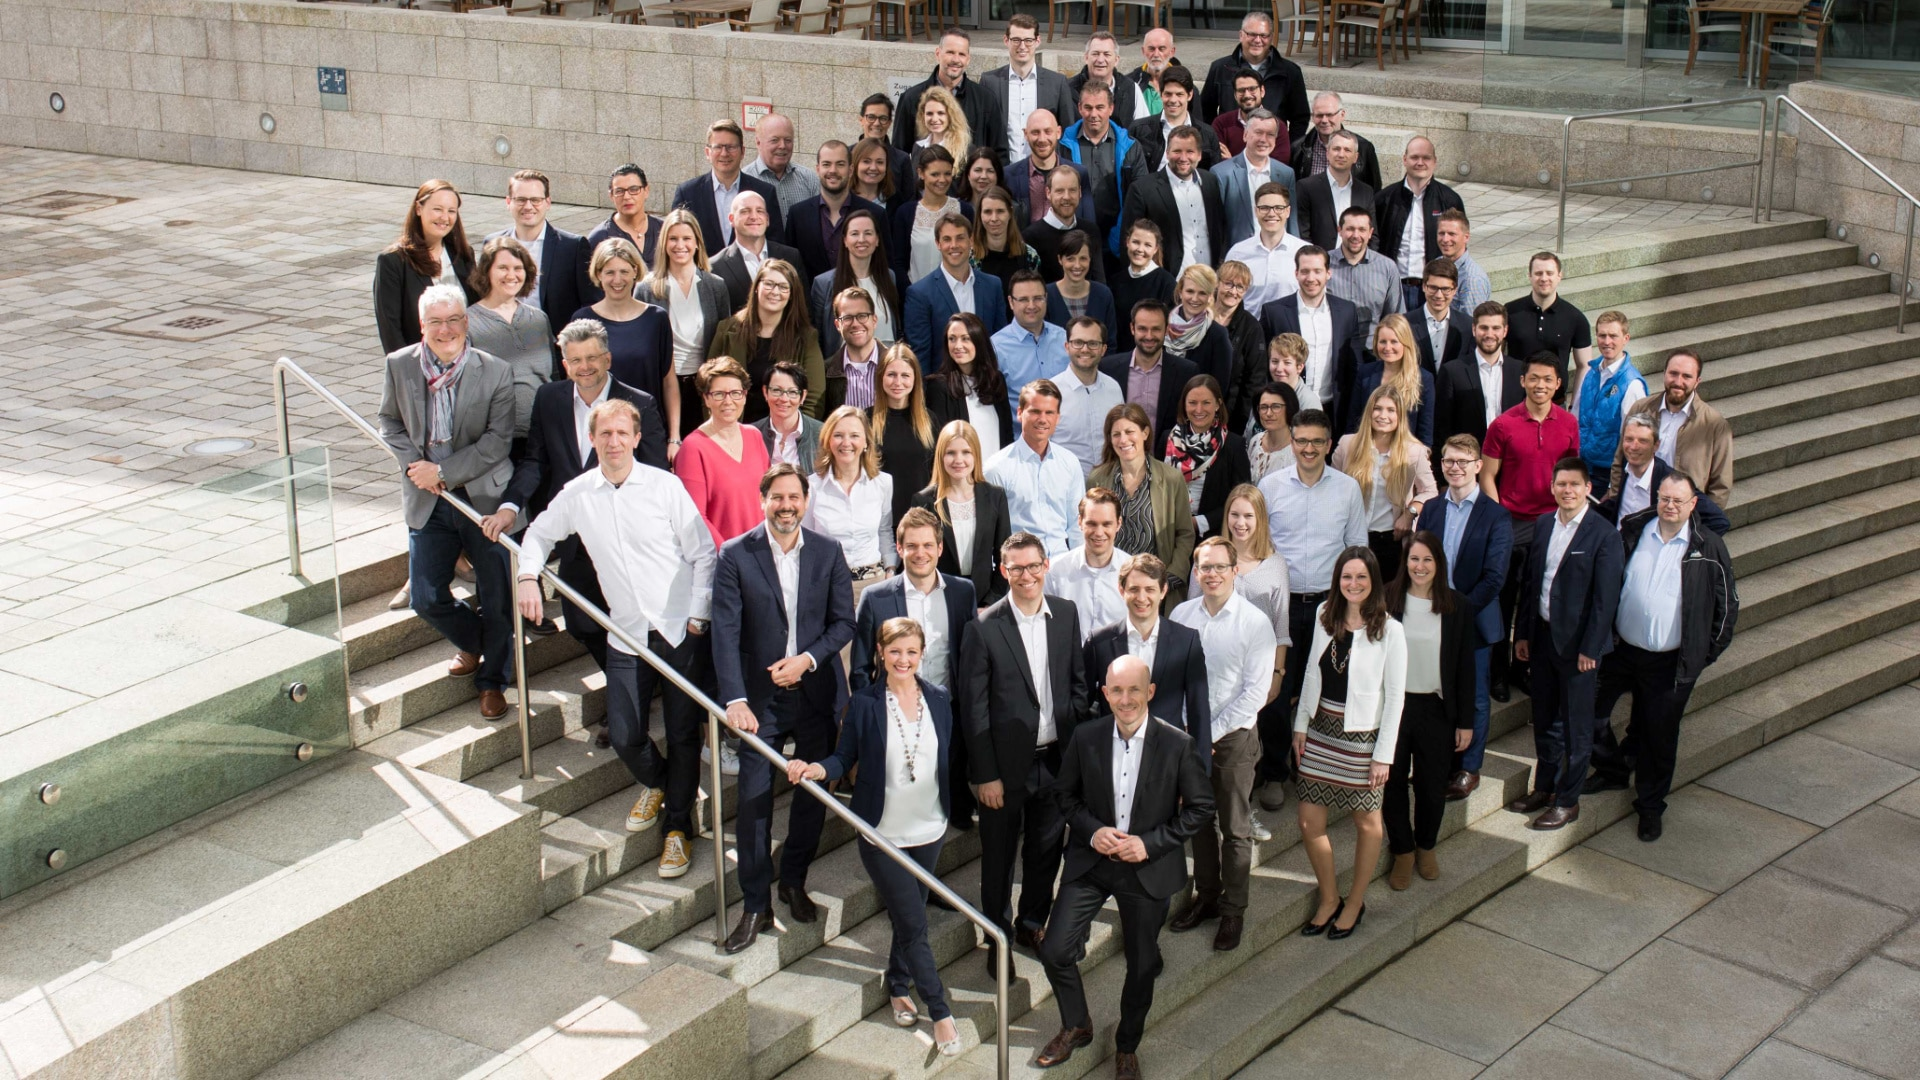 The 100 or so employees of Audi Consulting on the steps outside the museum Mobile Ingolstadt.